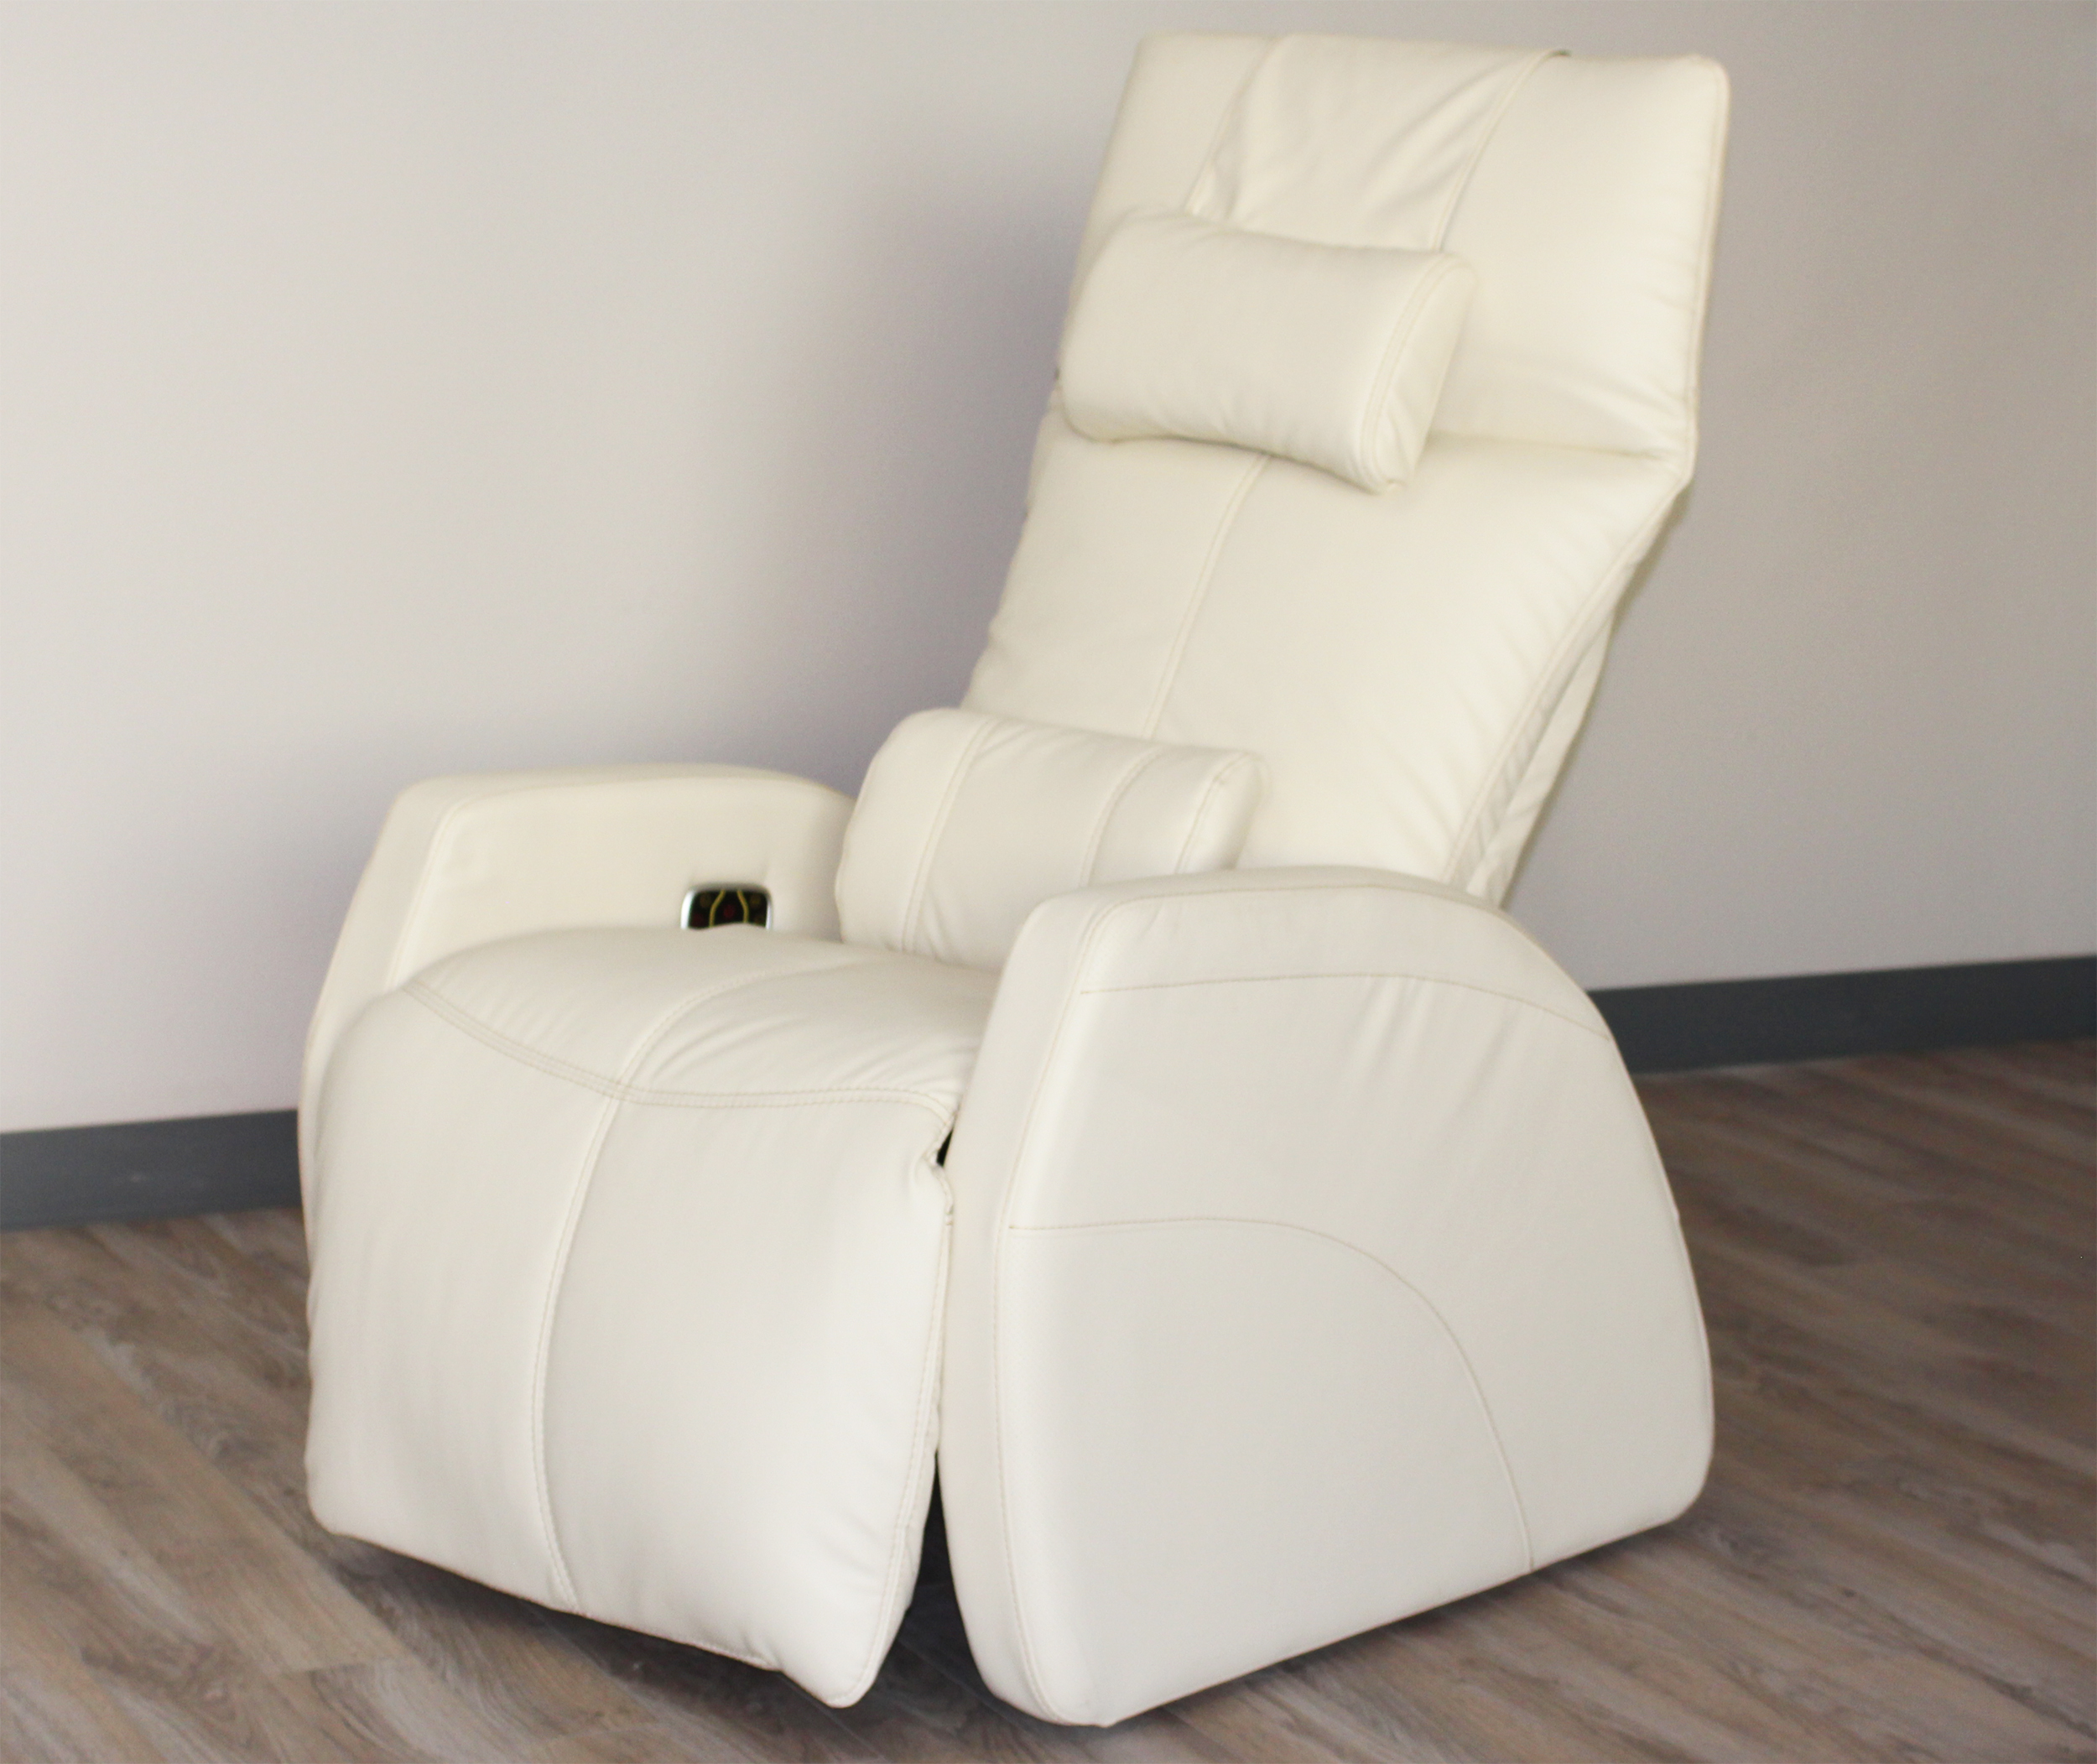 Cozzia ag 6100 power electric zero anti gravity recliner for Anti gravity chaise recliner